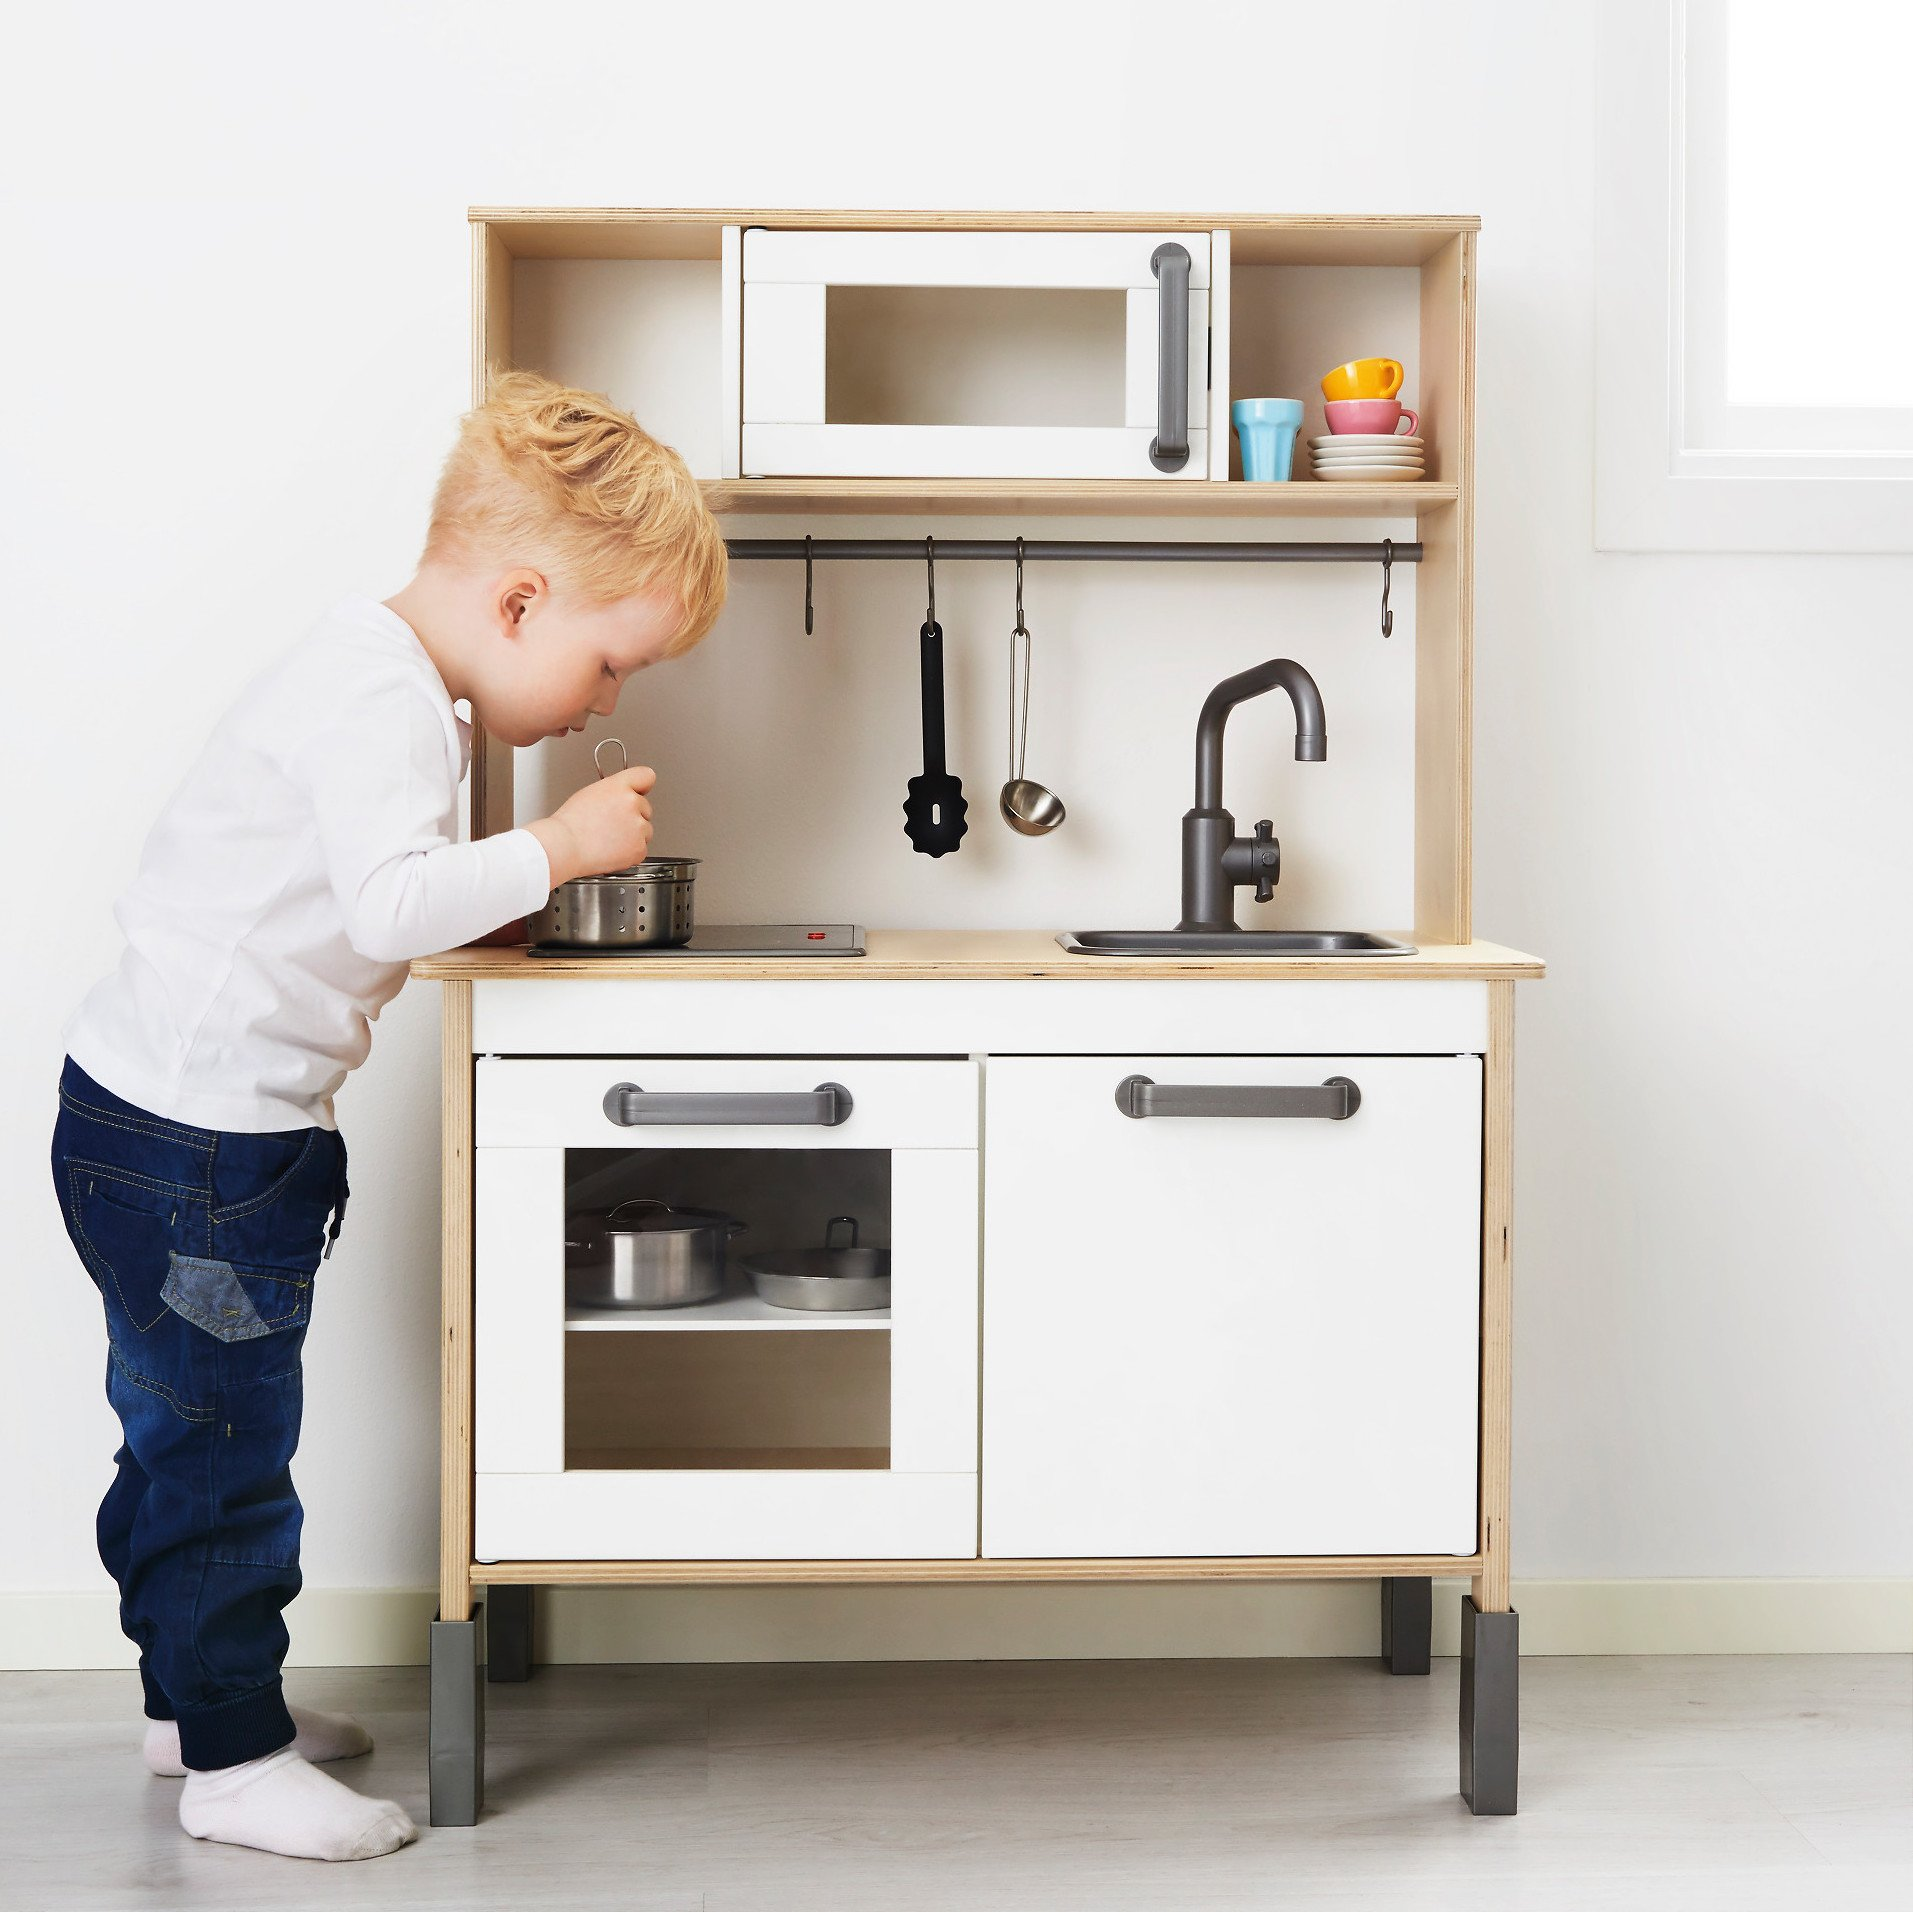 Hackers help: Functional mini kitchen for toddlers? - IKEA Hackers